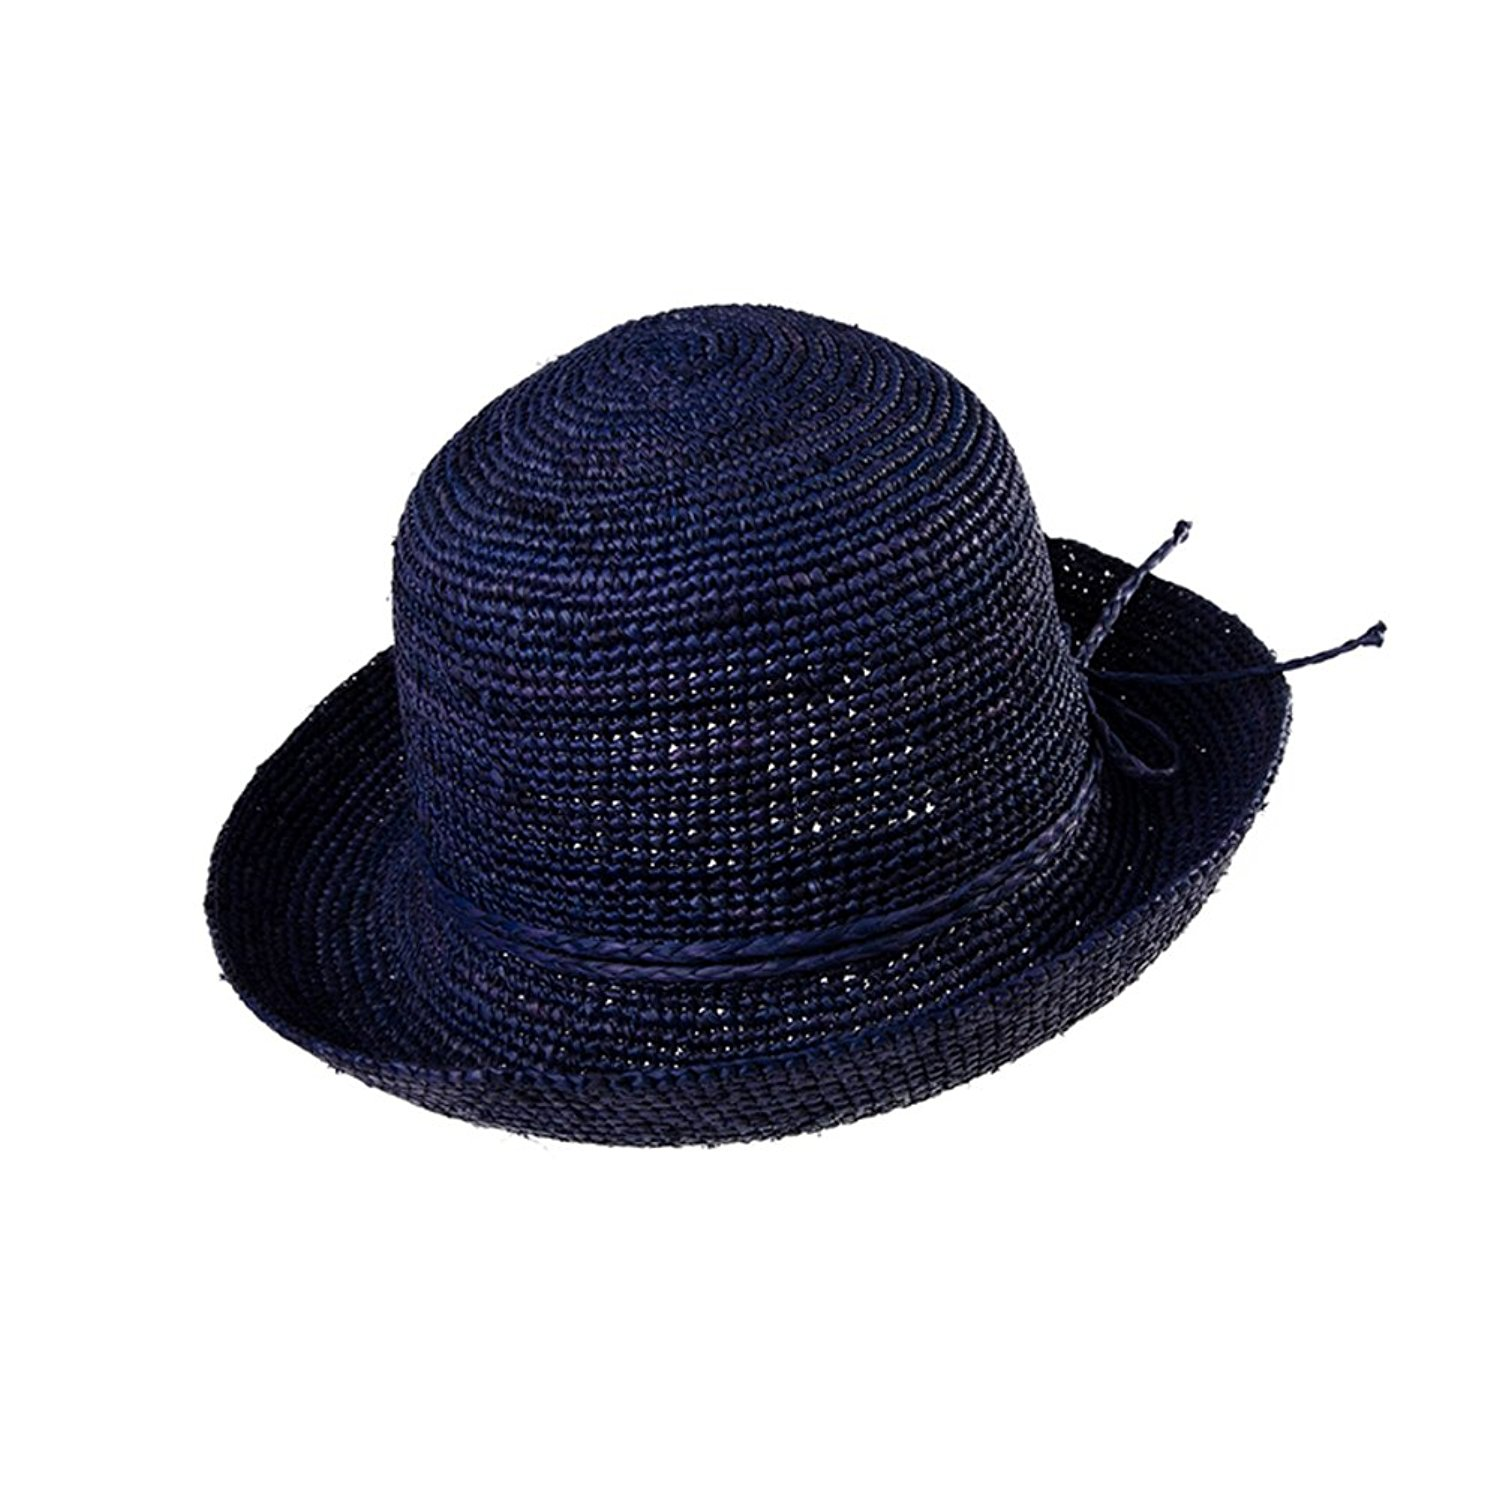 896ed92b147 Get Quotations · Hats for Women Rafi in summer straw hat Big beach hats Collapsible  Sun